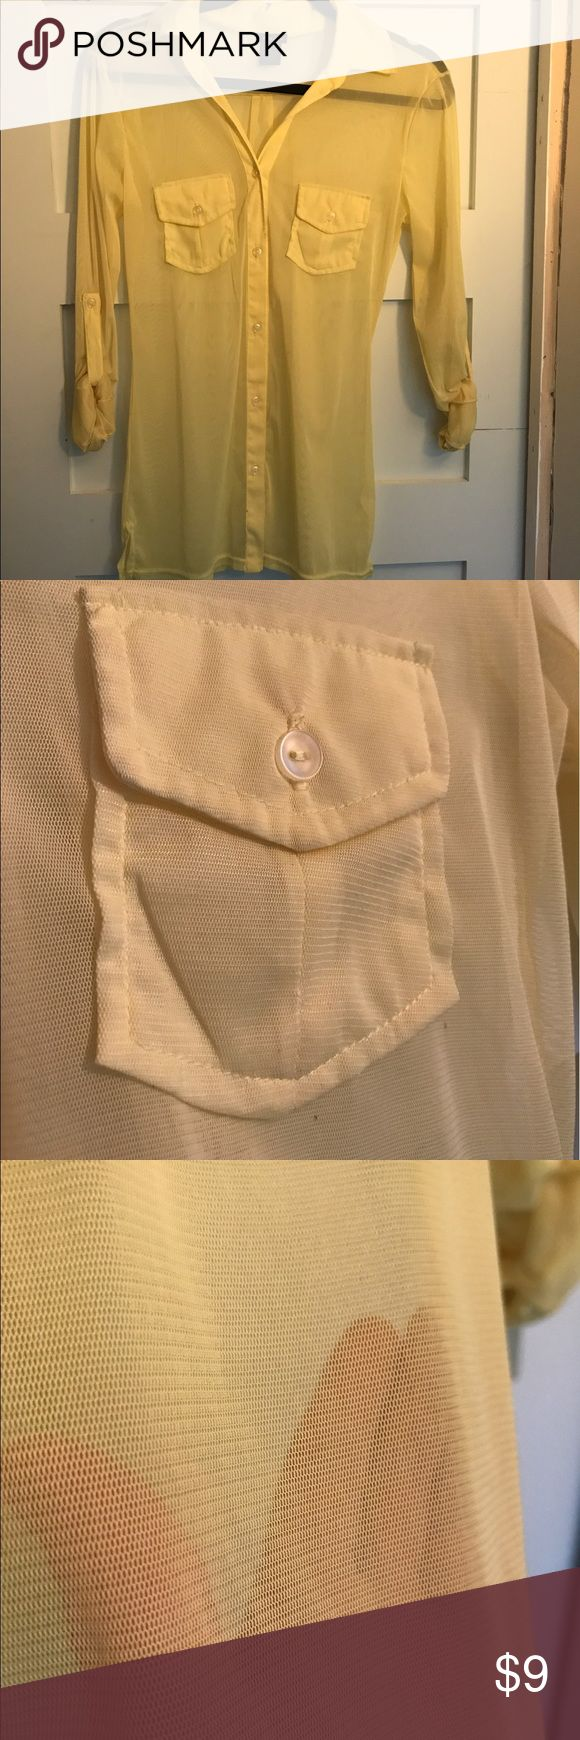 Rue 21 Yellow See Through Blouse Unique light yellow mesh button down blouse. Roll up button sleeves and two pockets across the chest. Has extra replacement button on back of tag. Has makeup spec below last button. (Might come out). From a smoke free home! 100% polyester. Rue 21 Tops Blouses